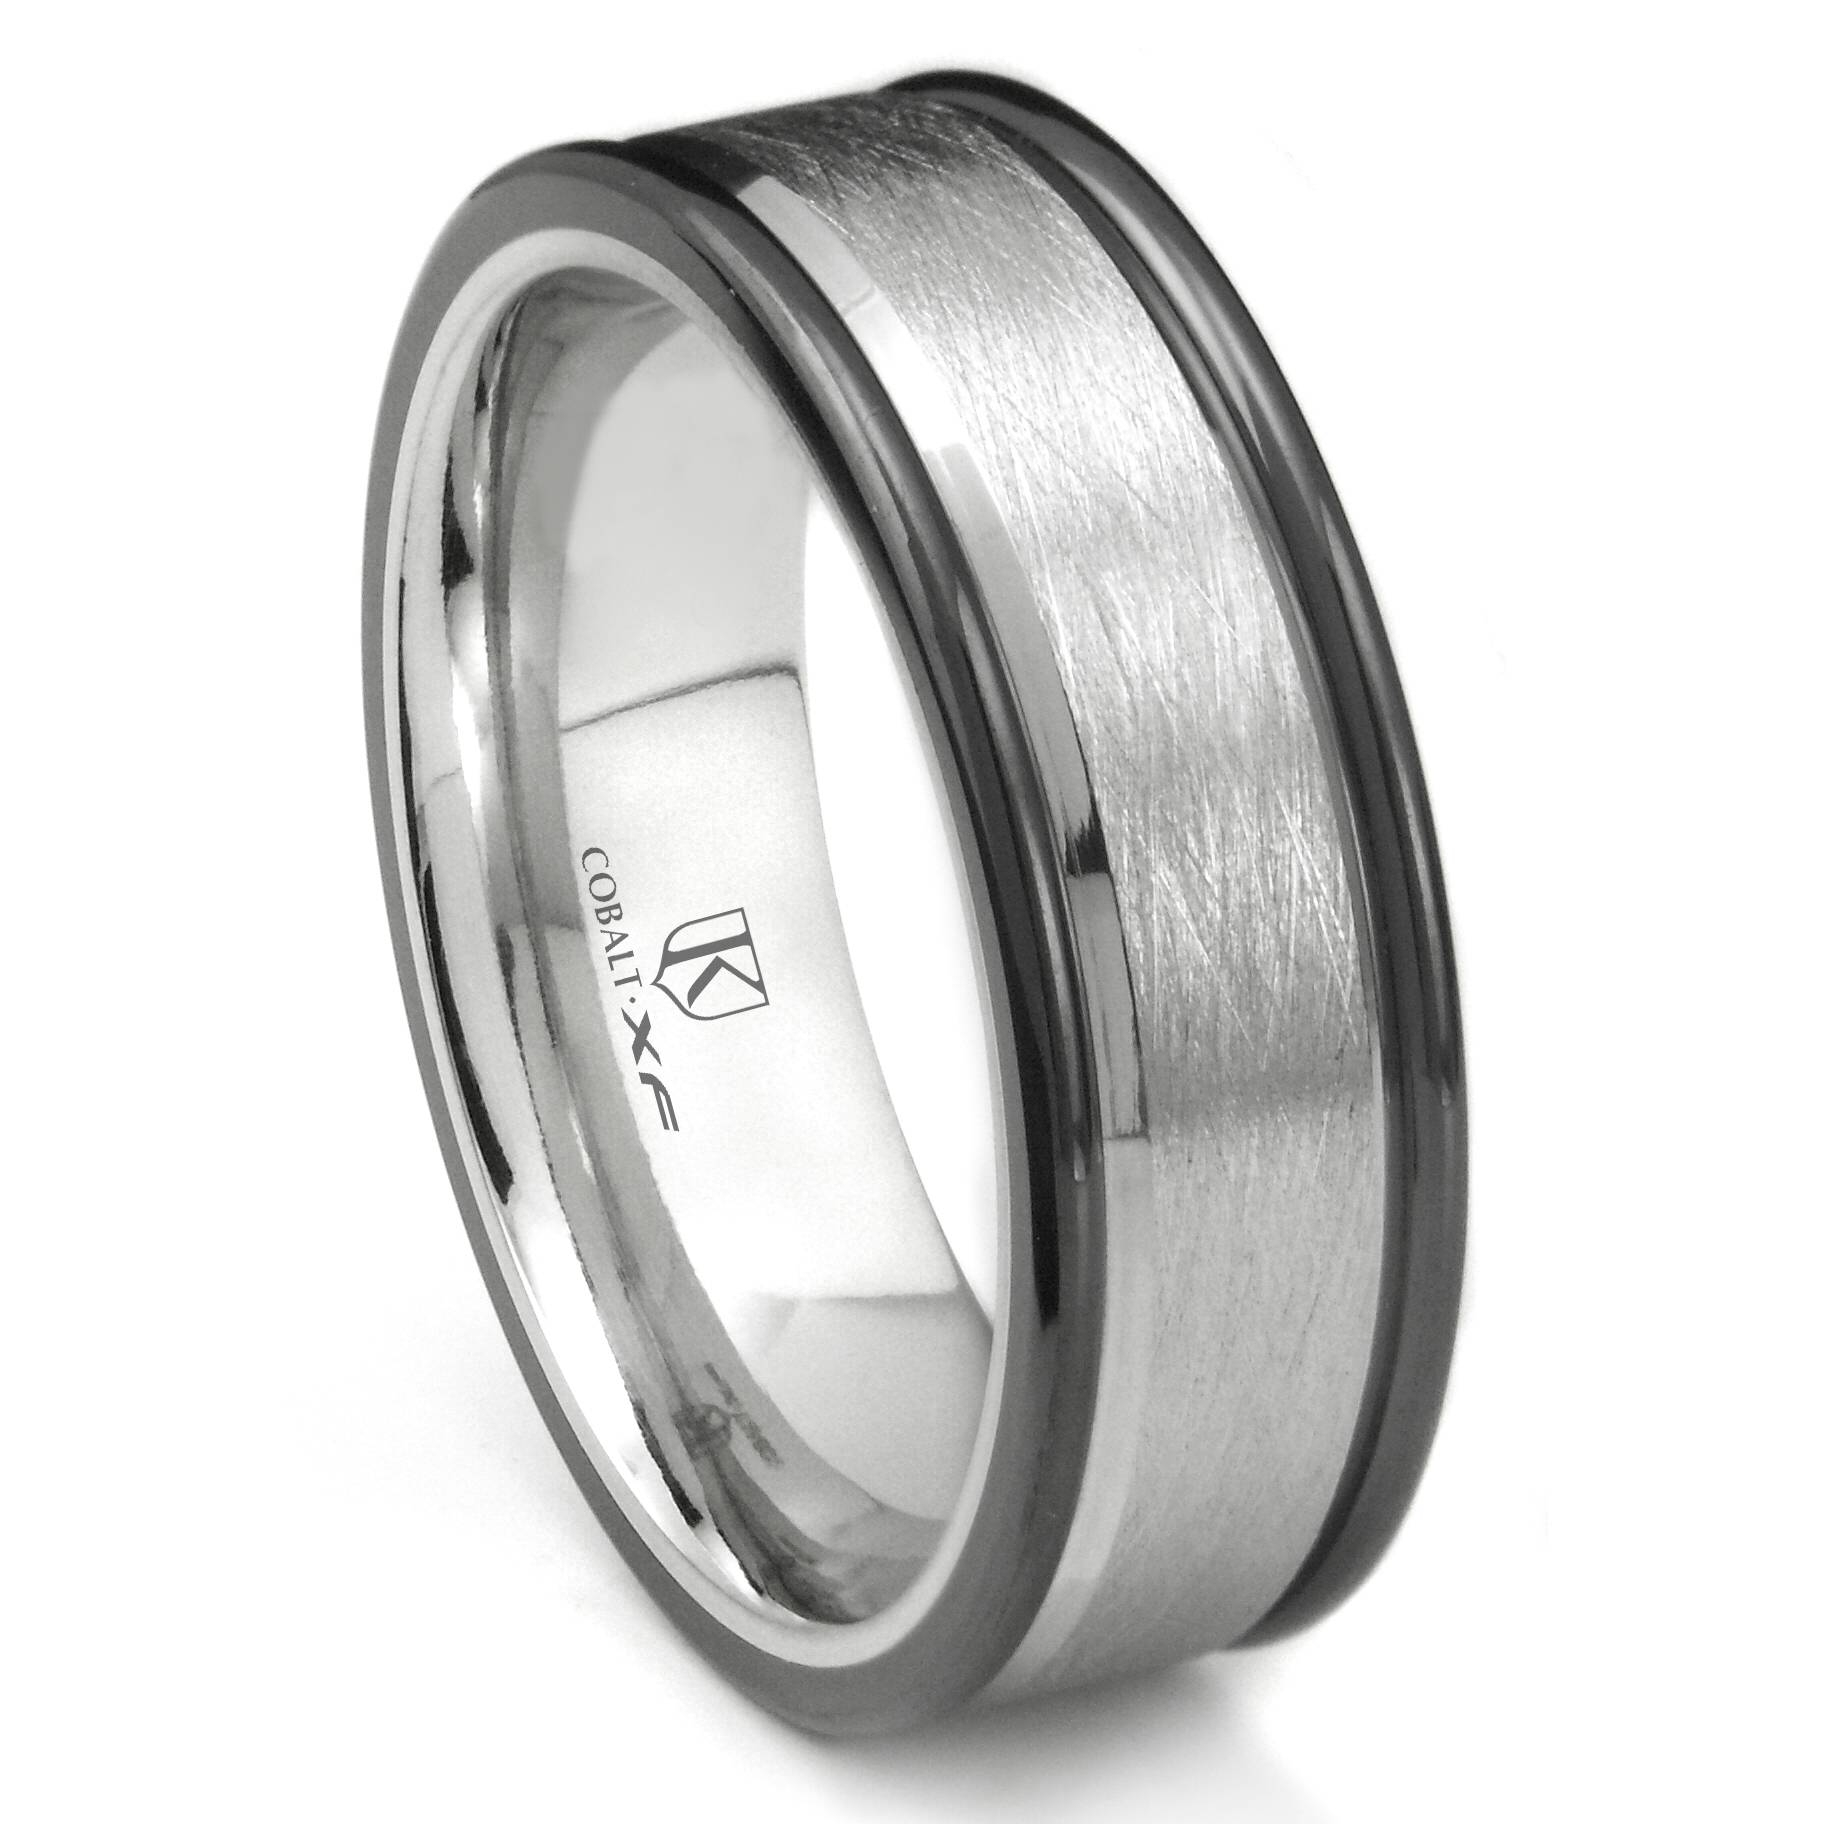 Cobalt Xf Chrome 8Mm Italian Di Seta Finish Two Tone Wedding Band Ring In Cobalt Mens Wedding Rings (View 6 of 15)